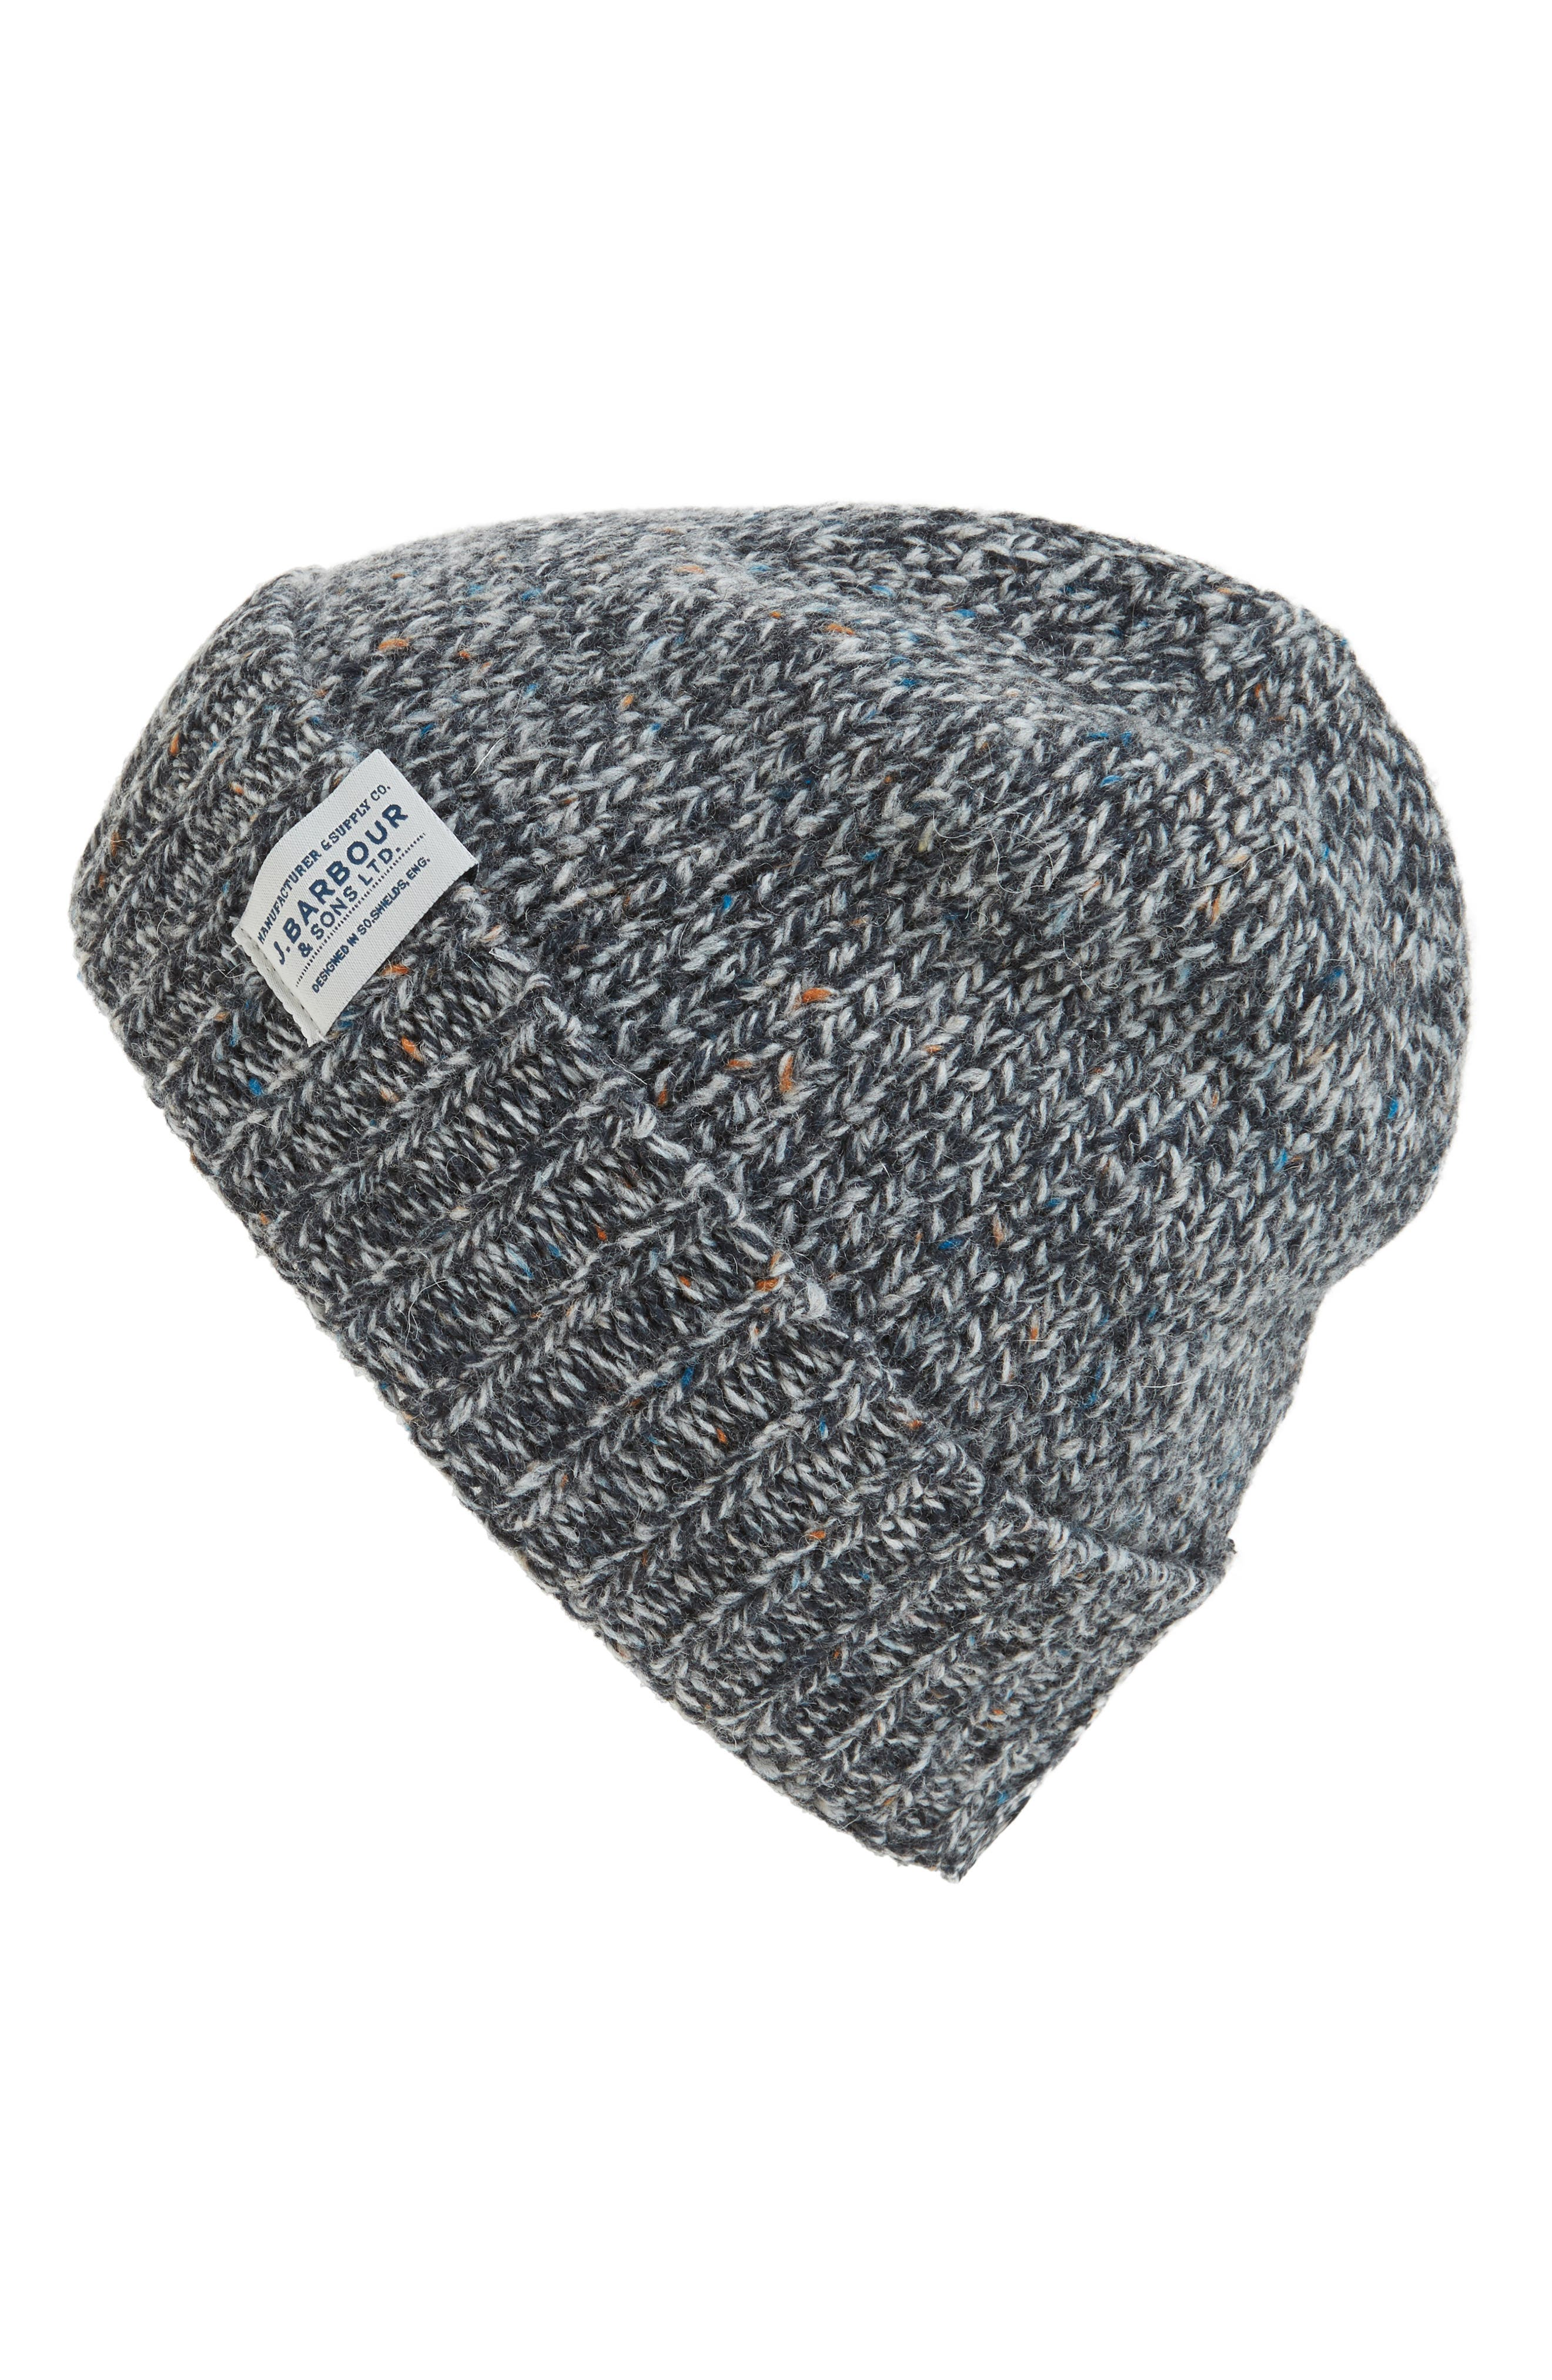 Whitfield Beanie,                         Main,                         color, 020